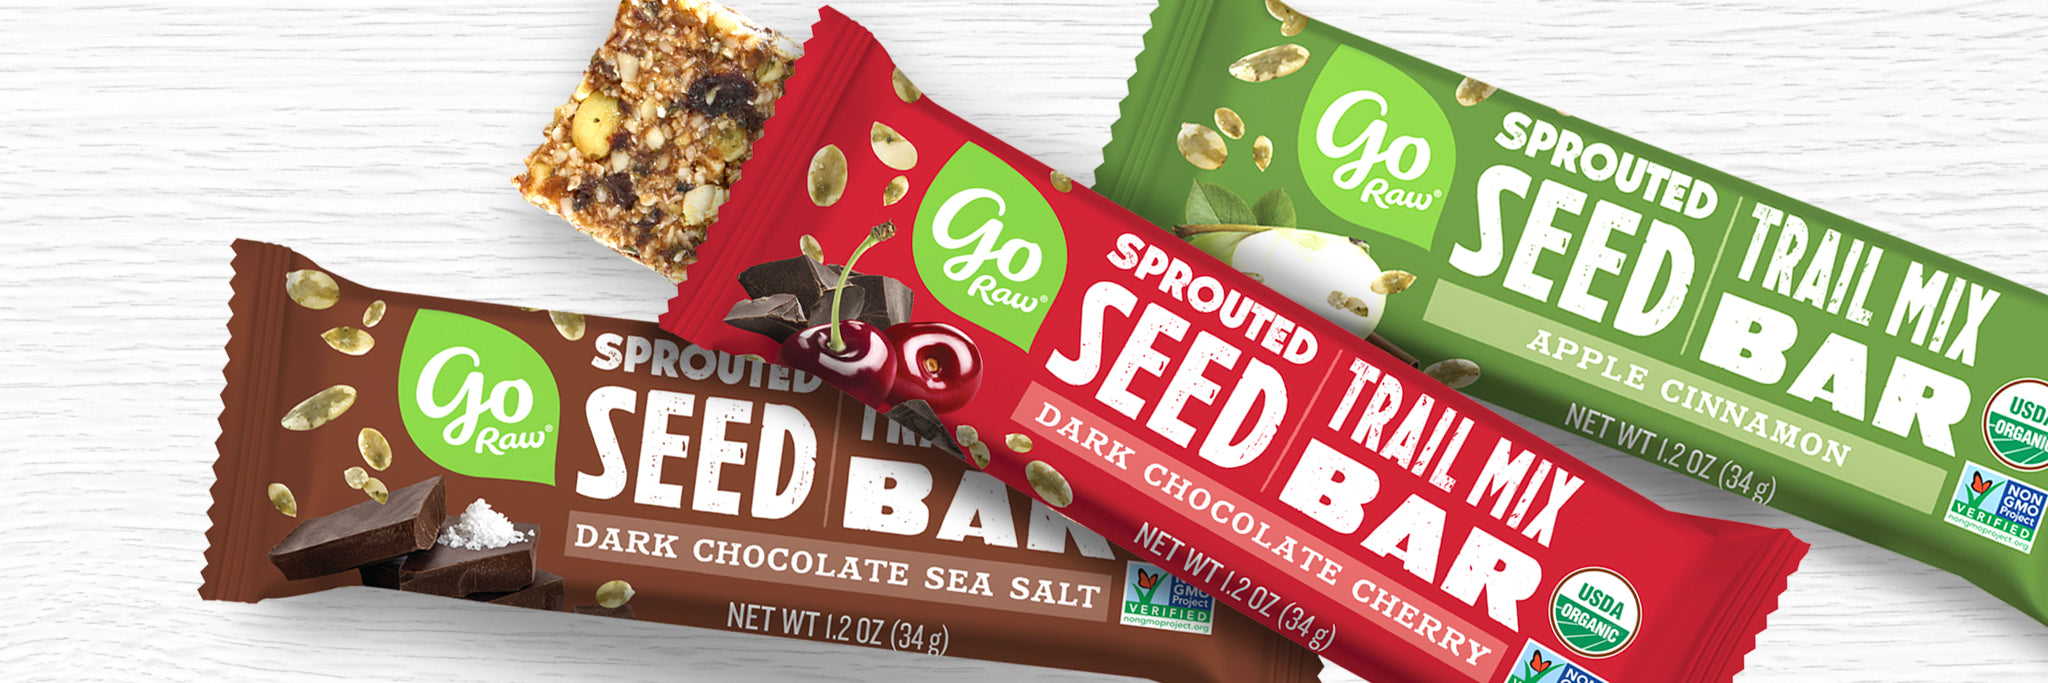 Go Raw Sprouted Trail Mix Bars